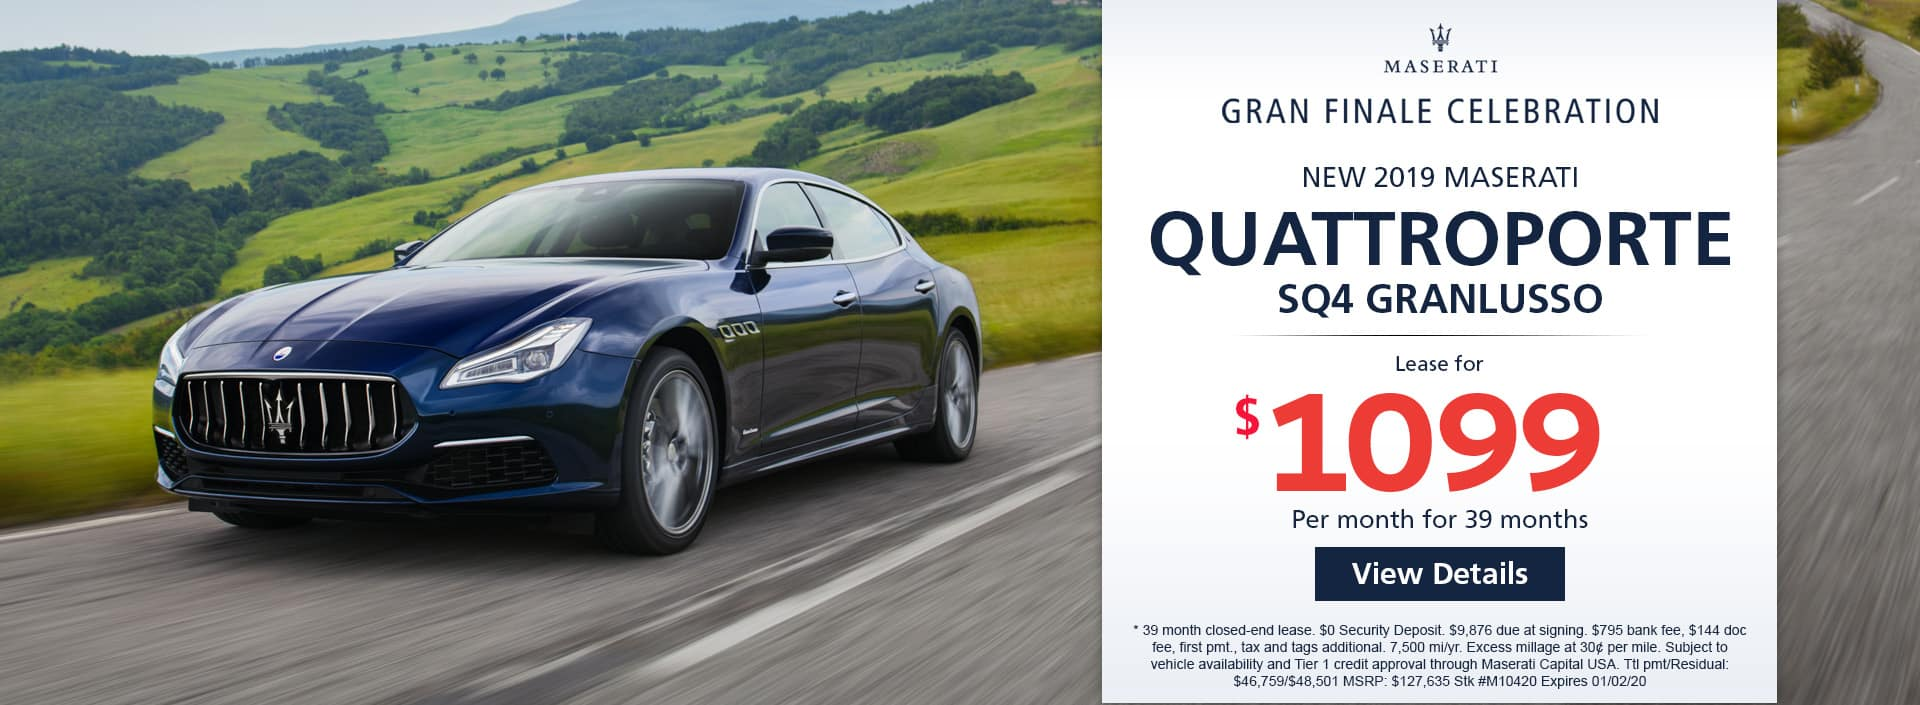 Lease a new 2019 MASERATI QUATTROPORTE SQ4 GRANLUSSO for $1,099 a month for 39 months. Or get special 0% APR financing for up to 60 months or 0% APR financing up to 72 months